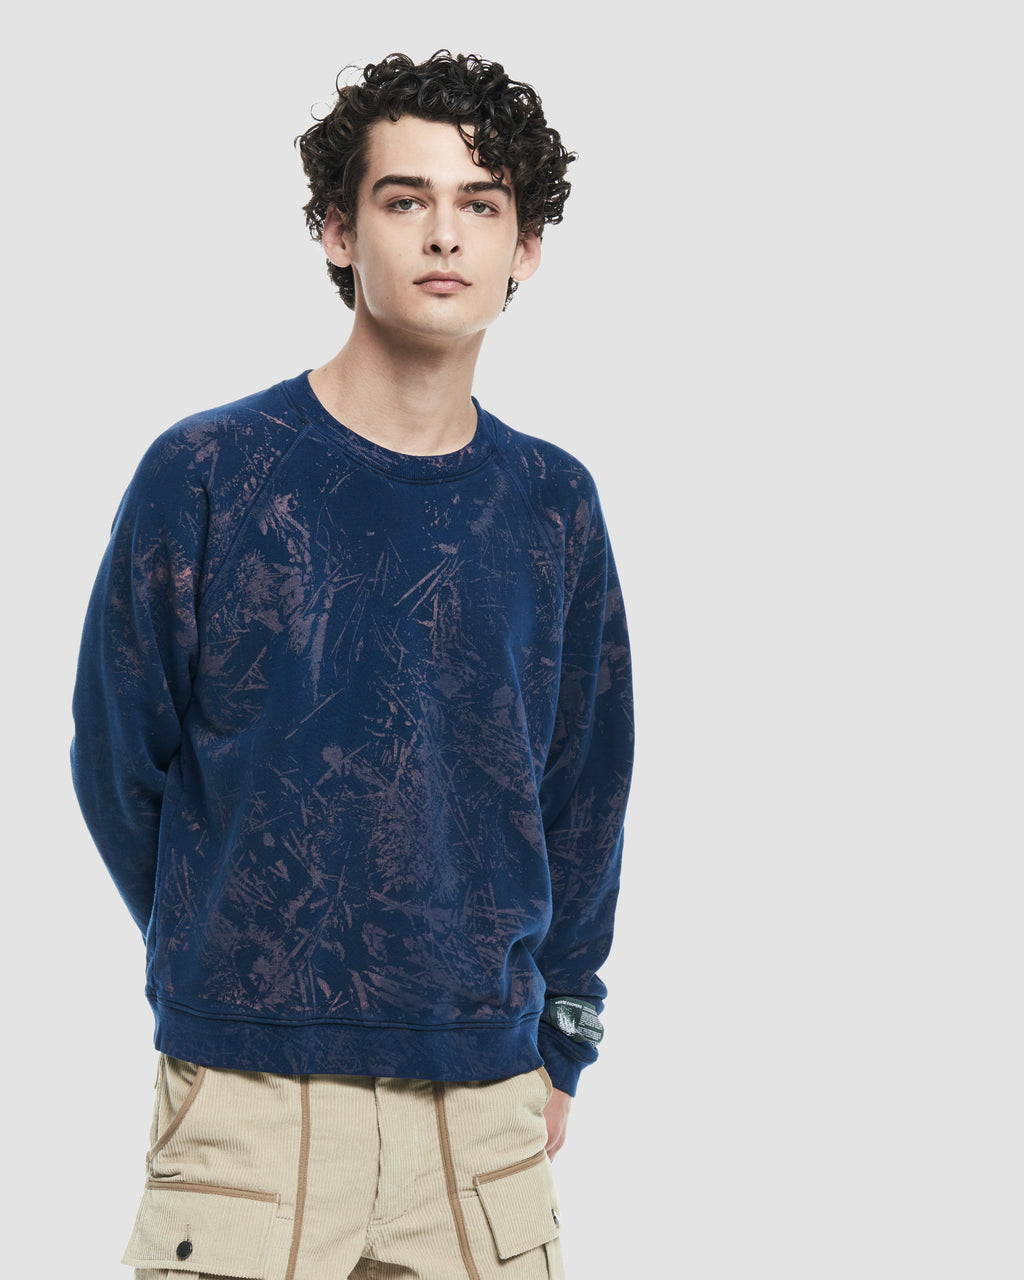 Forest Floor All Over Print Crewneck Sweatshirt in Navy